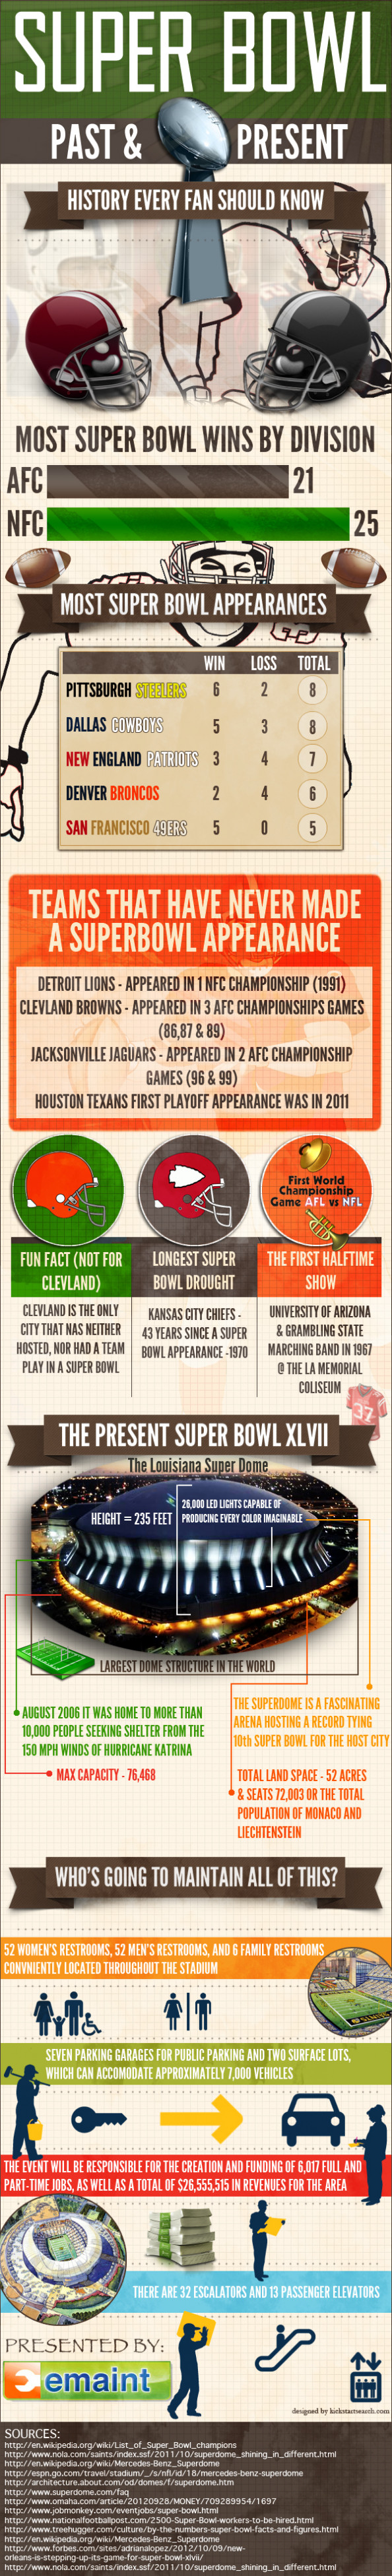 Super Bowl Past & Present Infographic